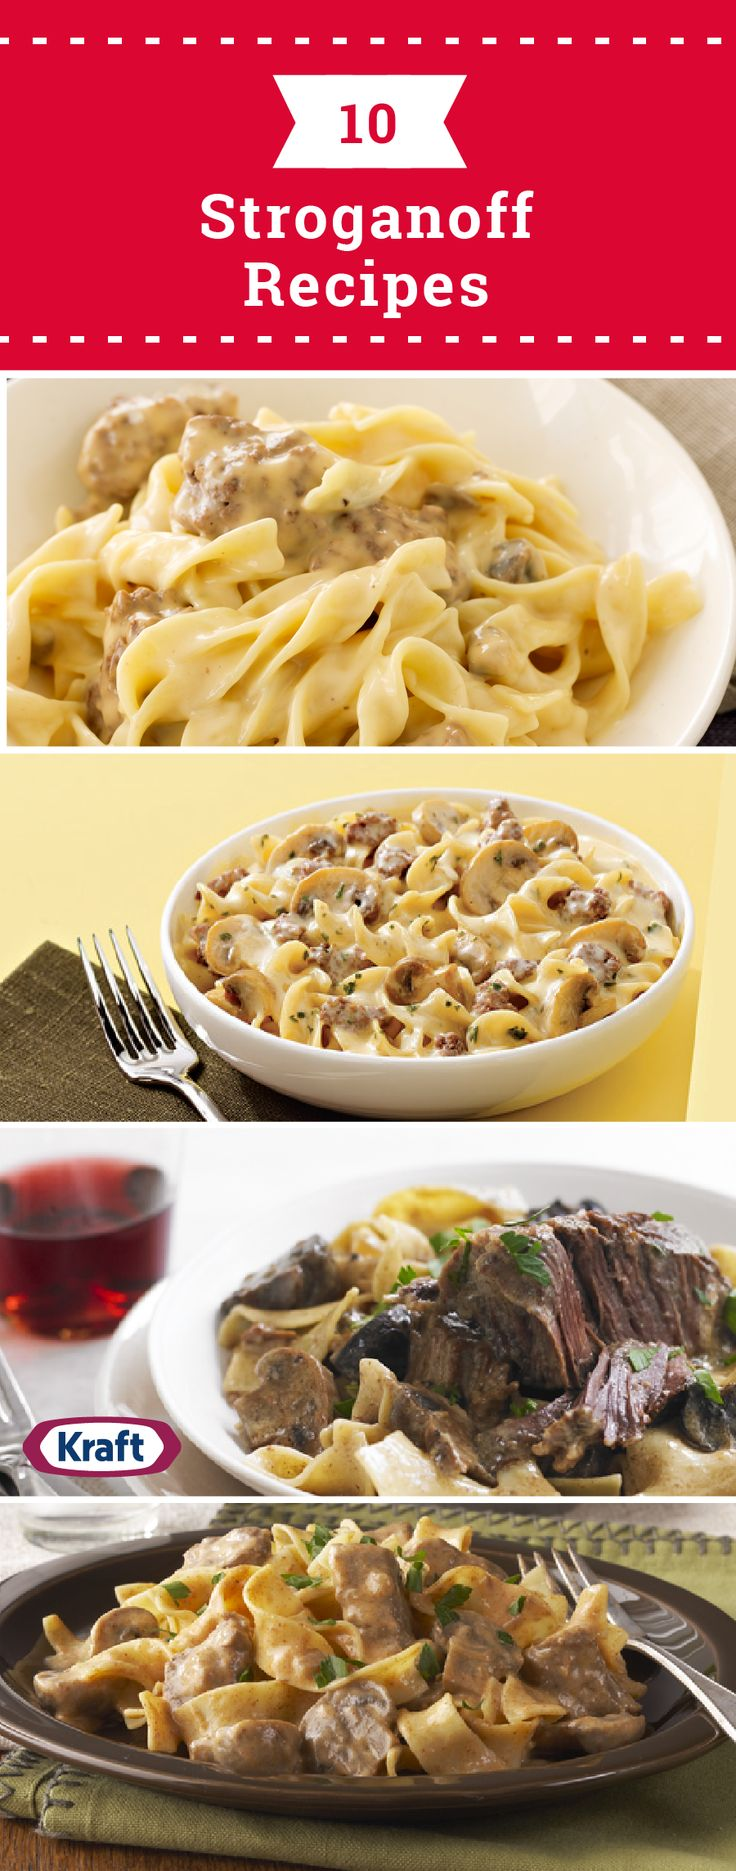 10 Stroganoff Recipes – When it comes to stroganoff recipes, beef stroganoff is the classic—but there are so many ways to enjoy it on your dinner table! Check out this collection to see varieties like Easy One-Skillet Stroganoff, Slow-Cooker Short Rib Stroganoff, and Shrimp Stroganoff.